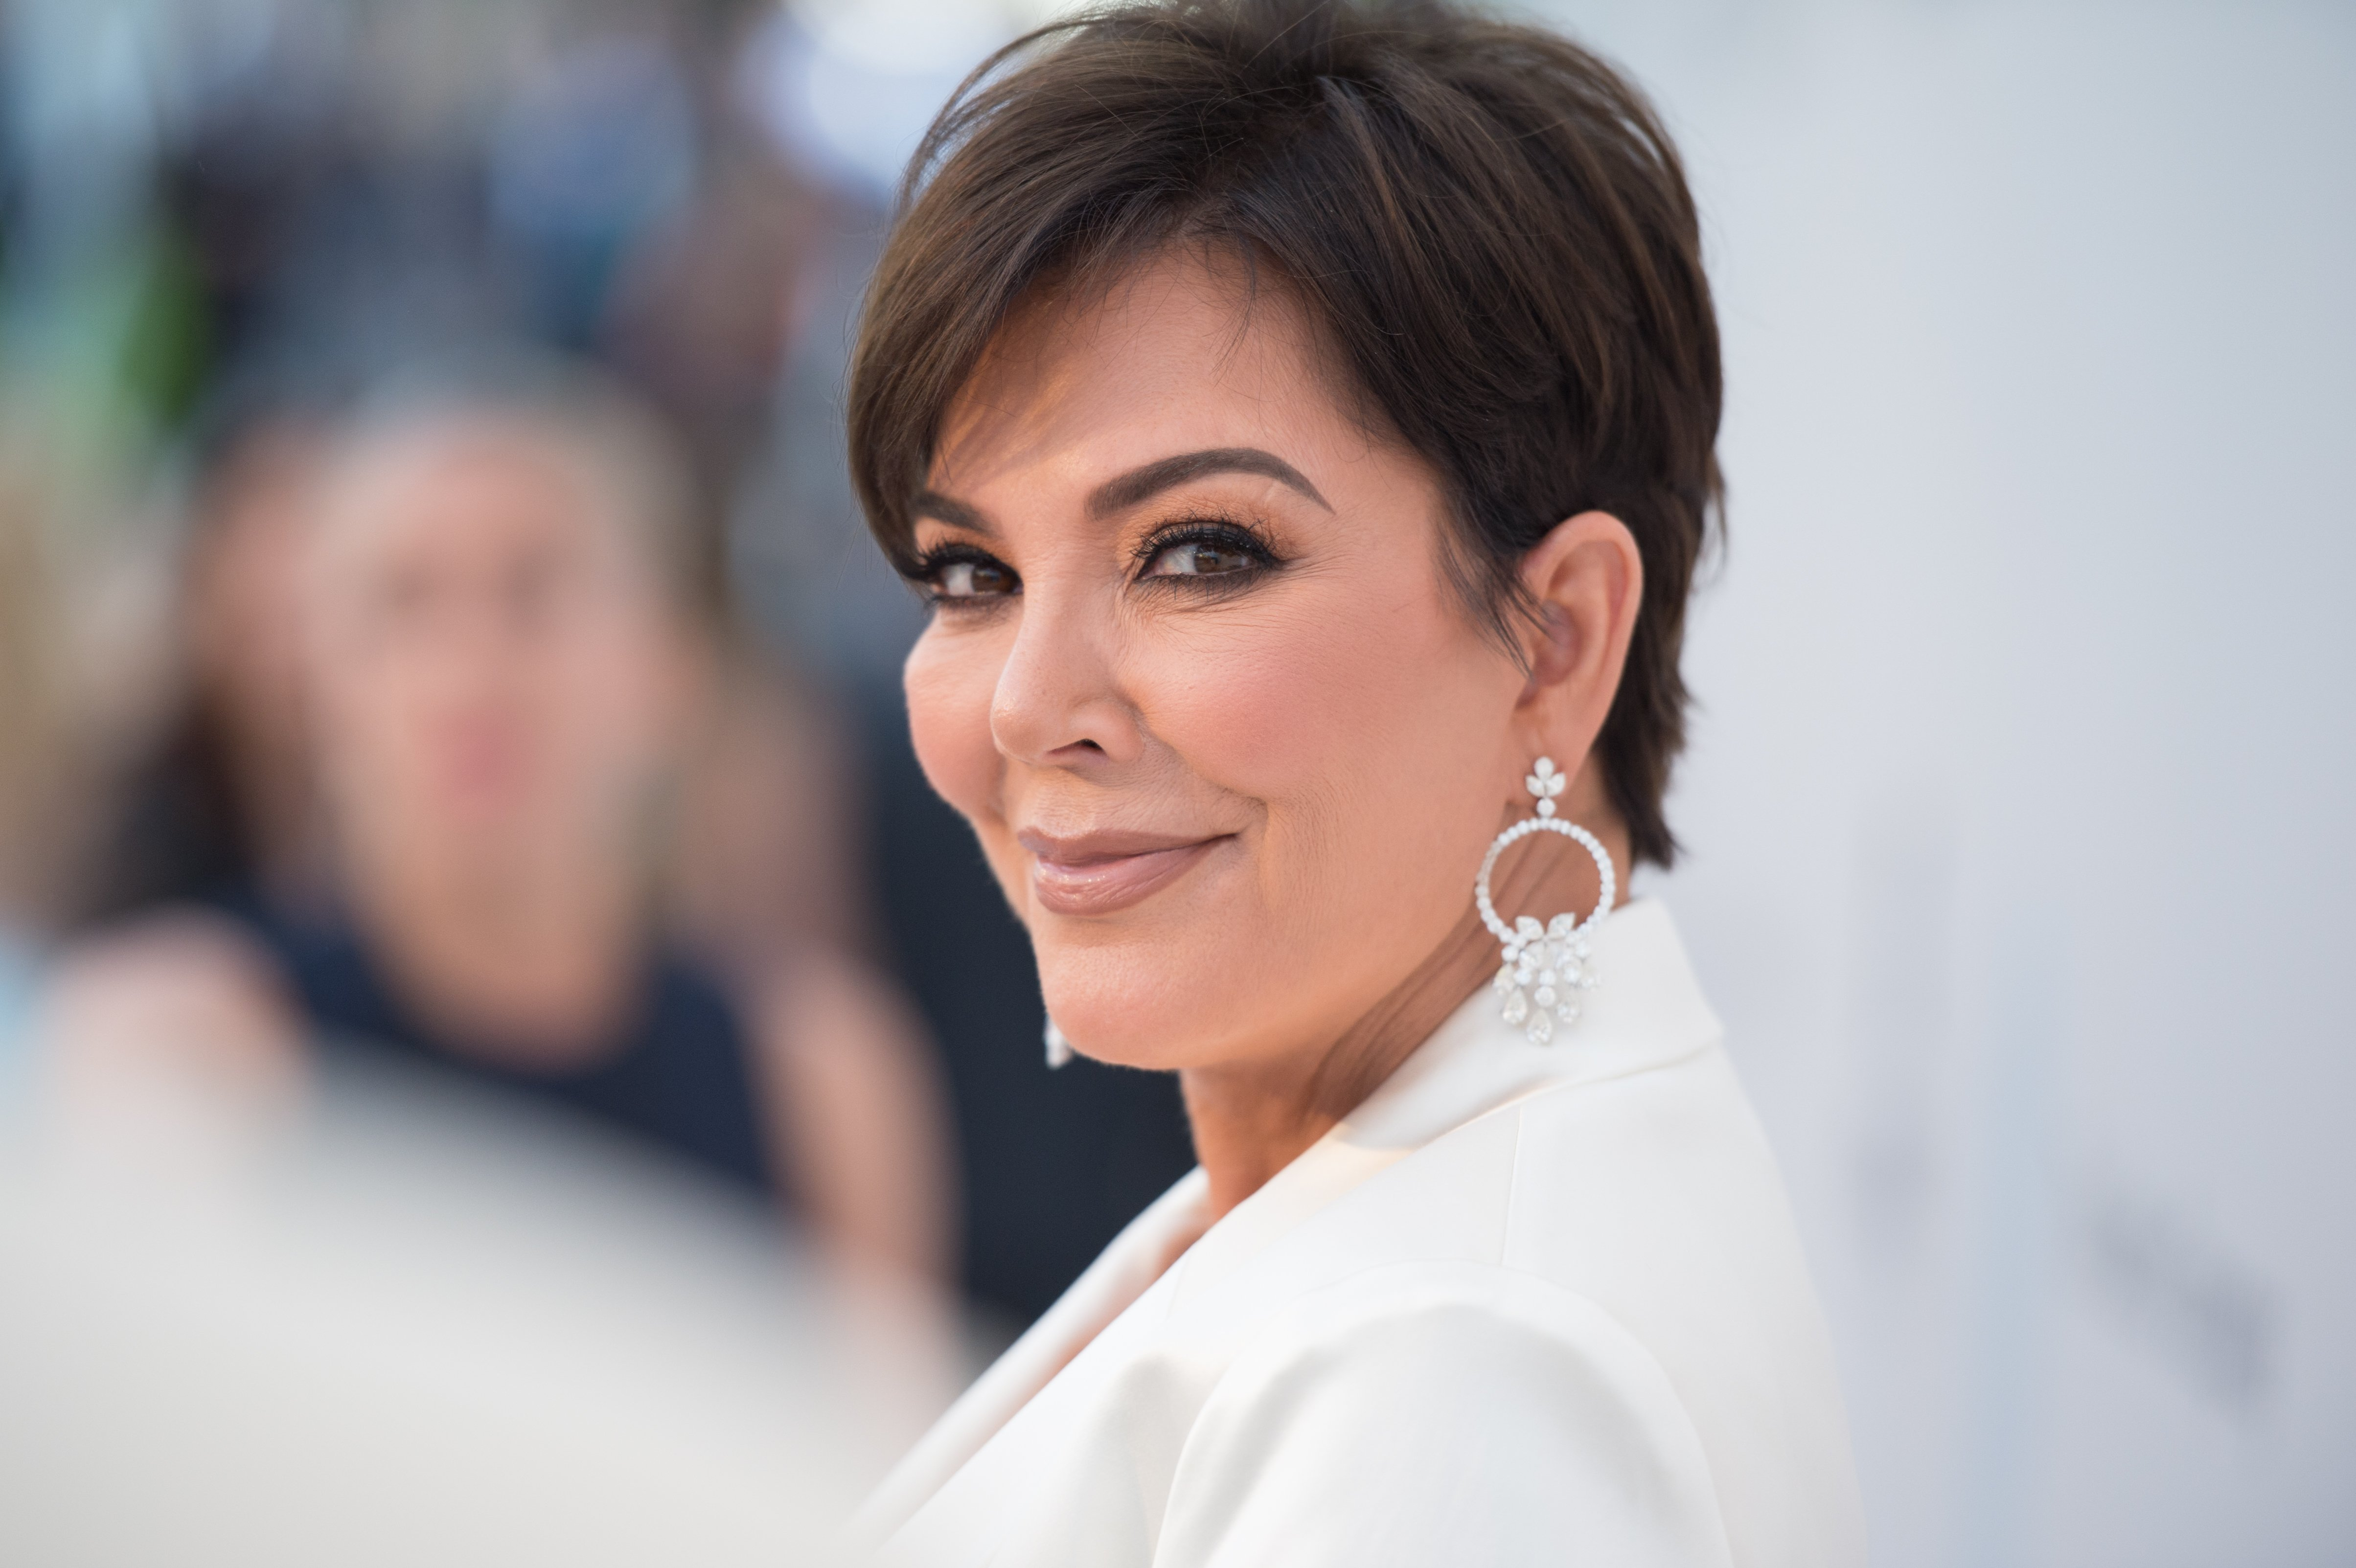 Kris Jenner attending the amfAR Cannes Gala in March 2019. | Photo: Getty images